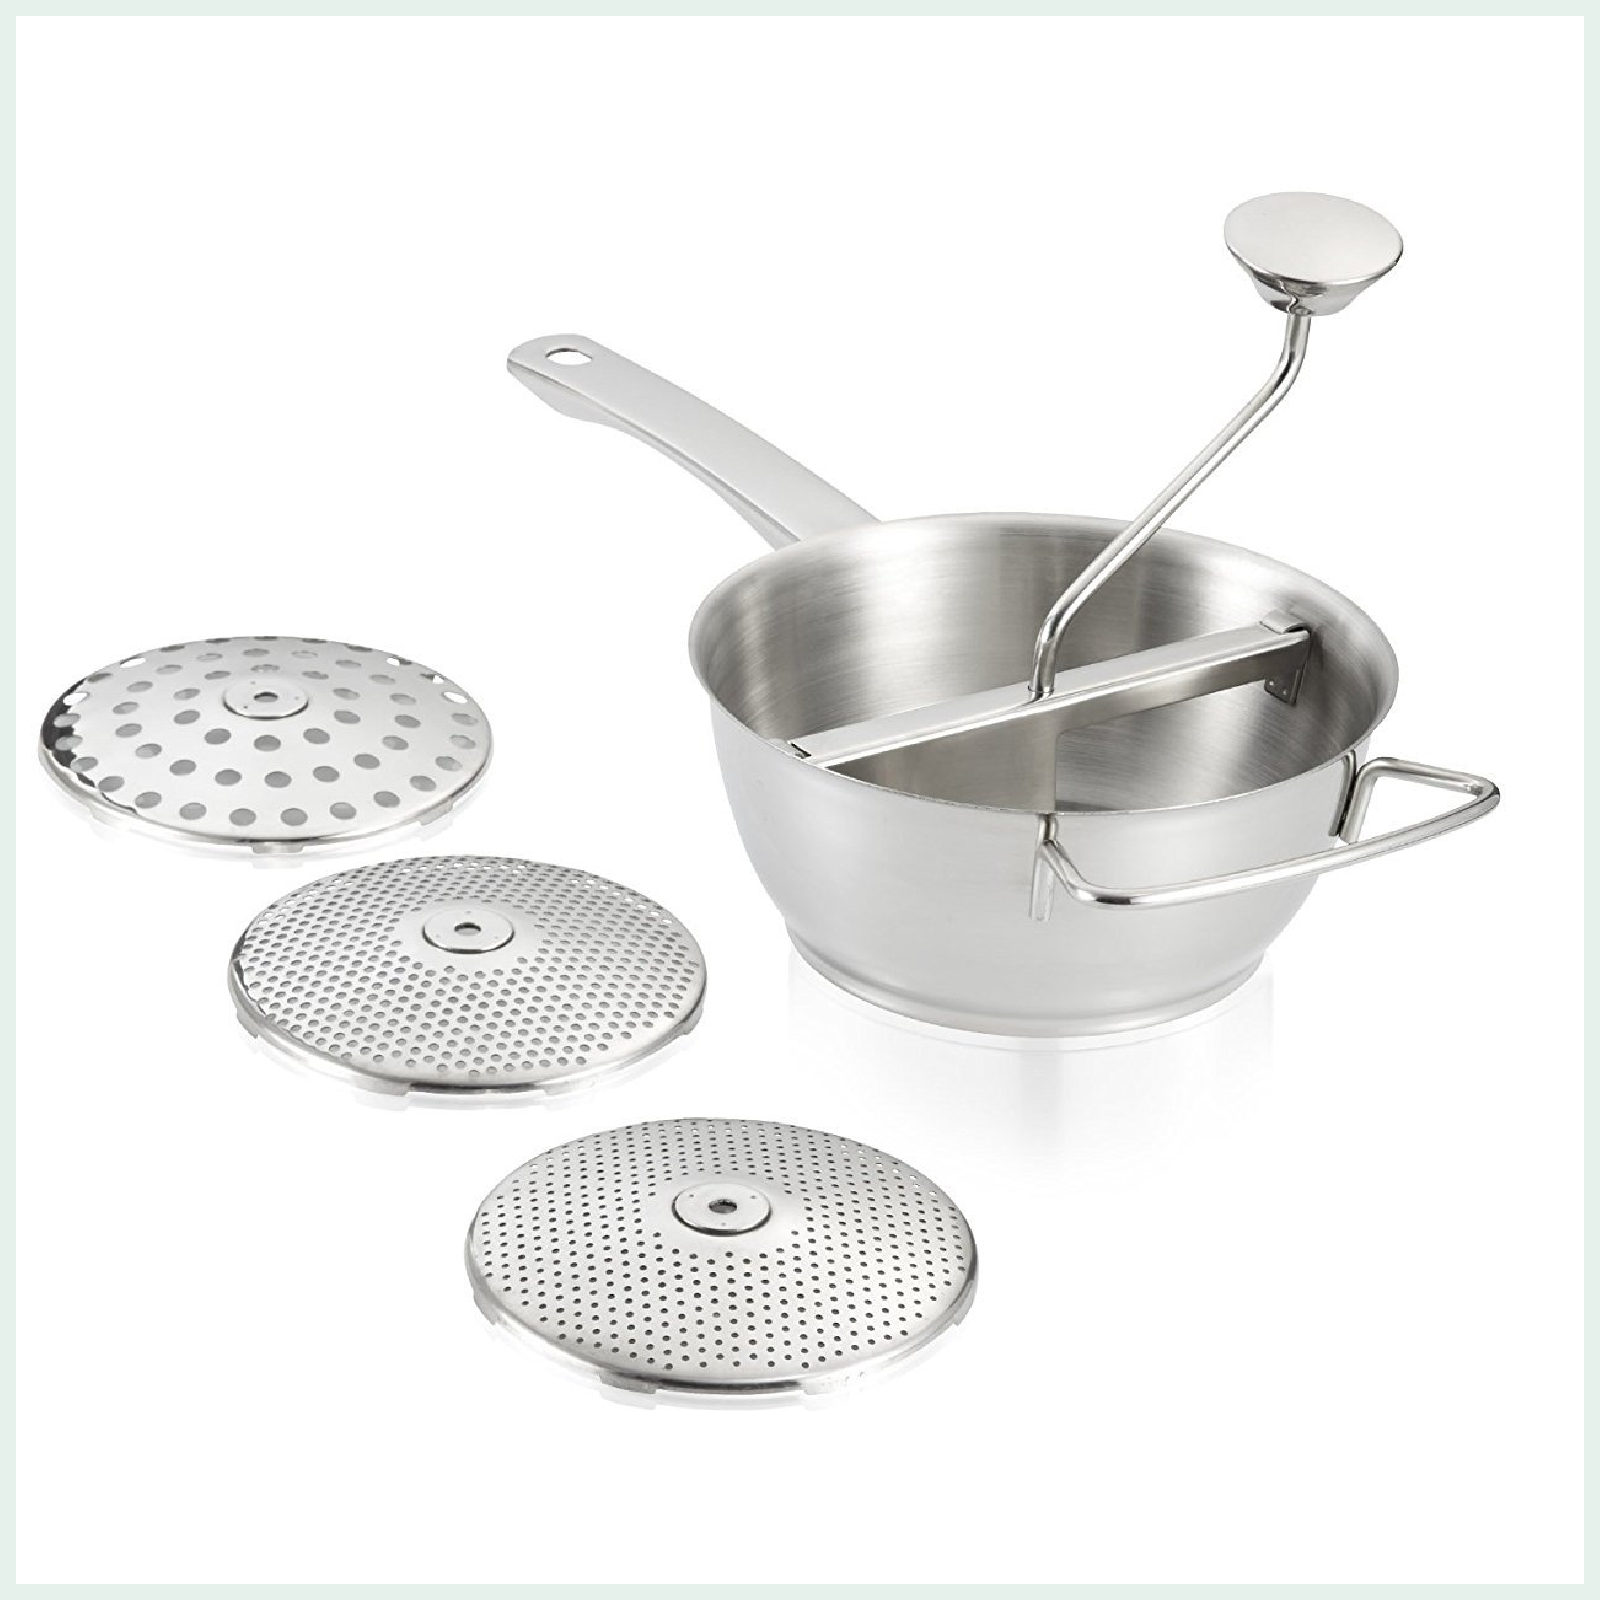 Leifheit Proline food mill. East sieving and straining with this high quality stainless steel mouli. With 3 insert discs.